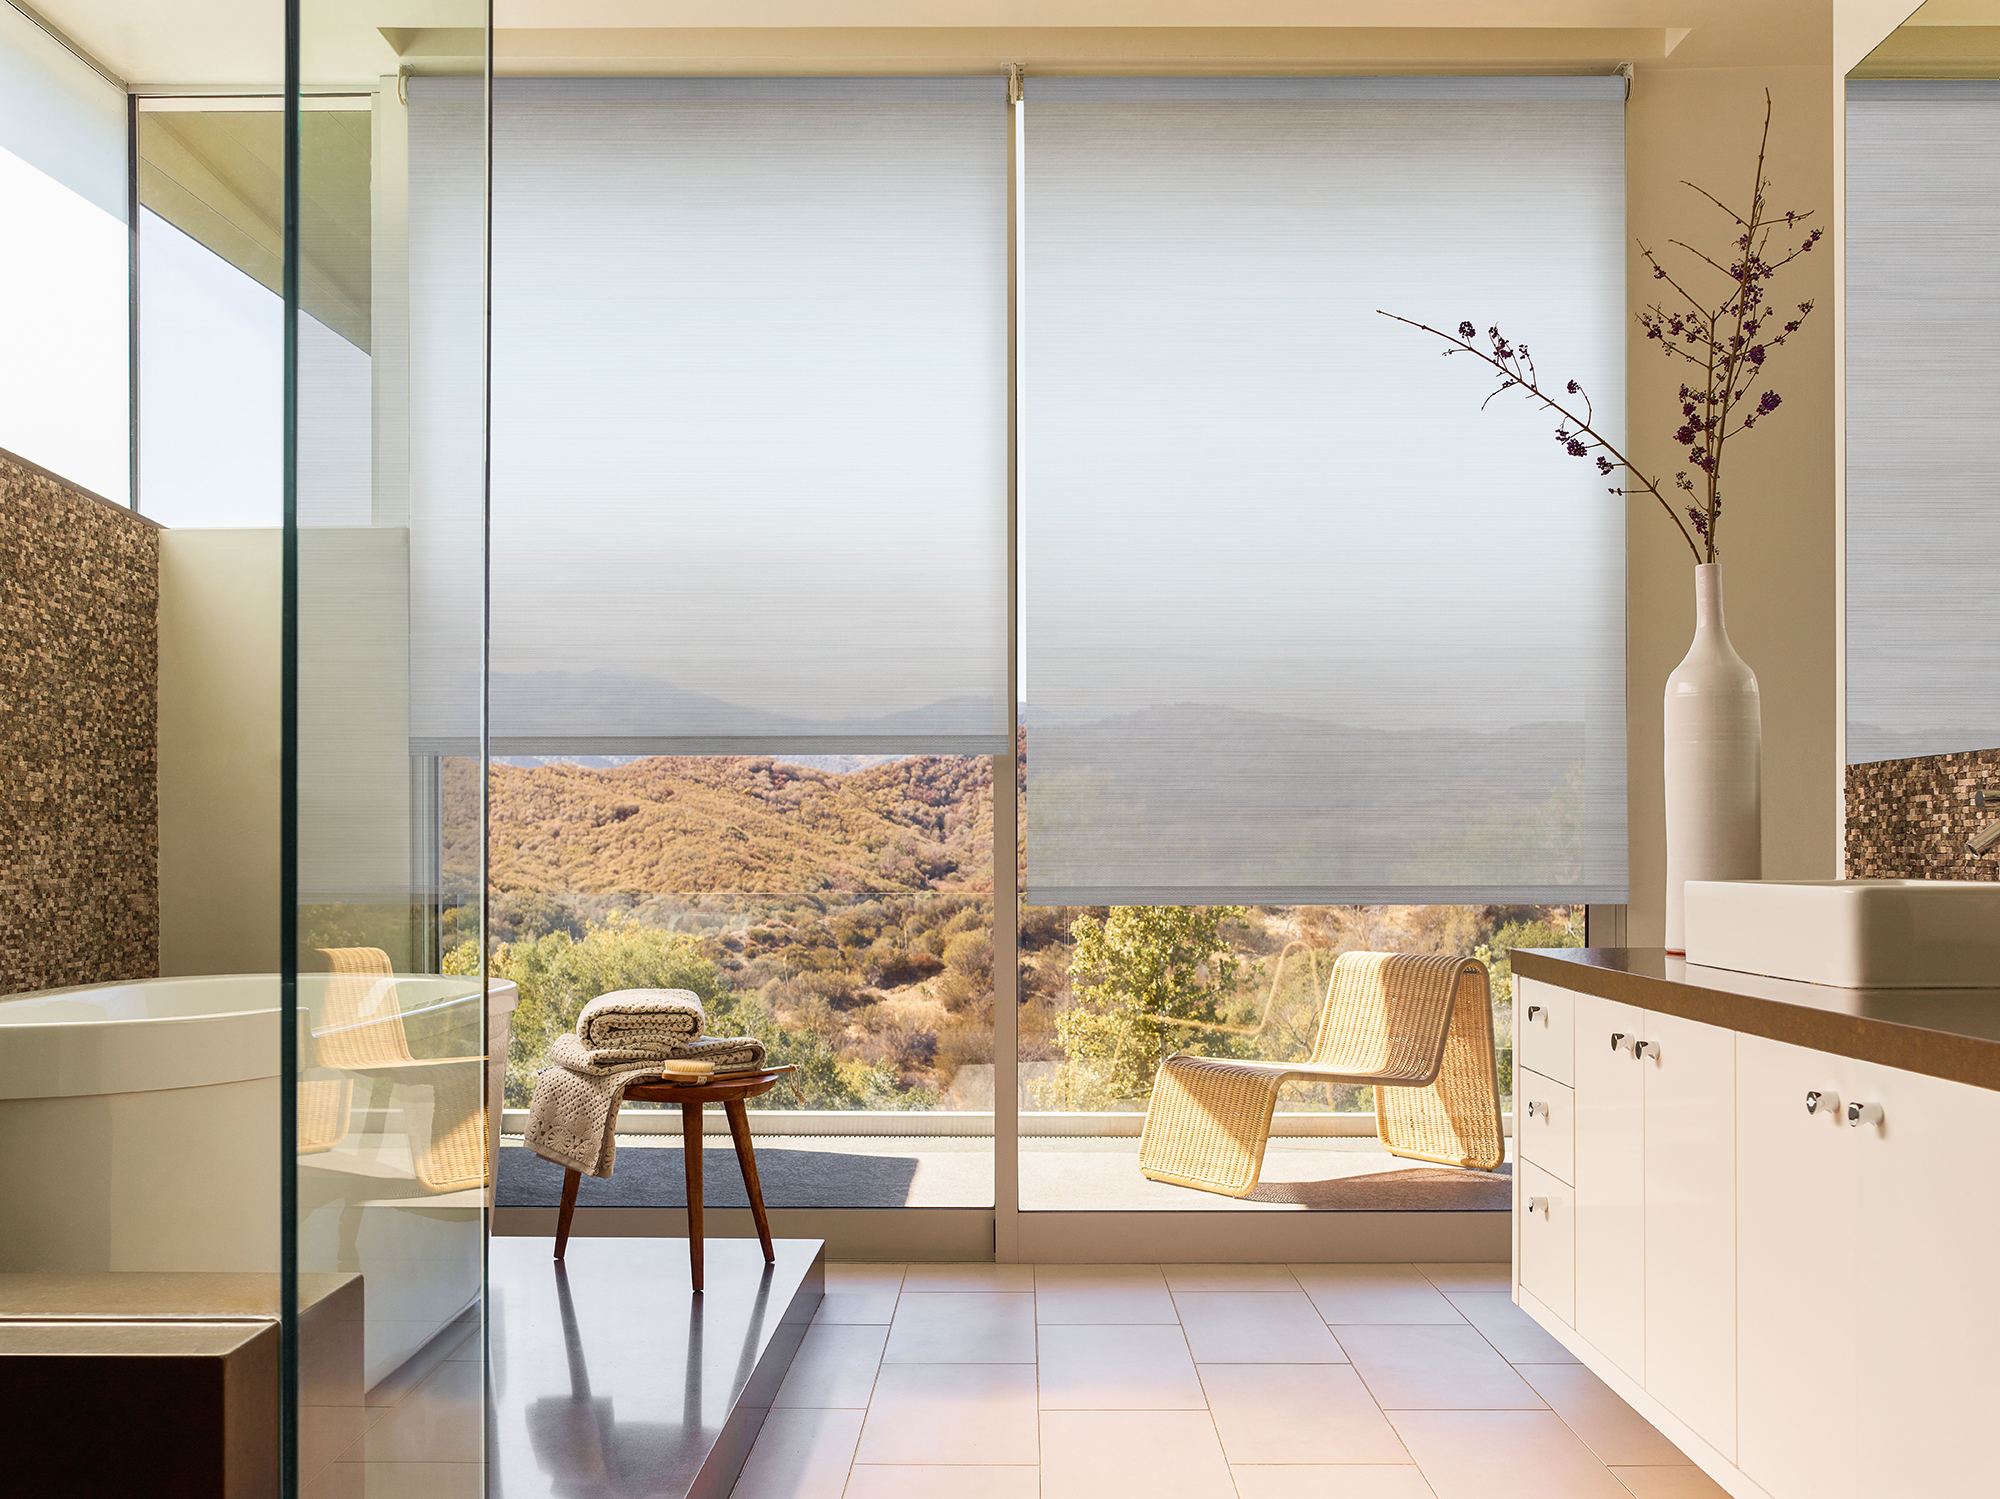 Merveilleux Bathroom Window Treatments Roller Shades